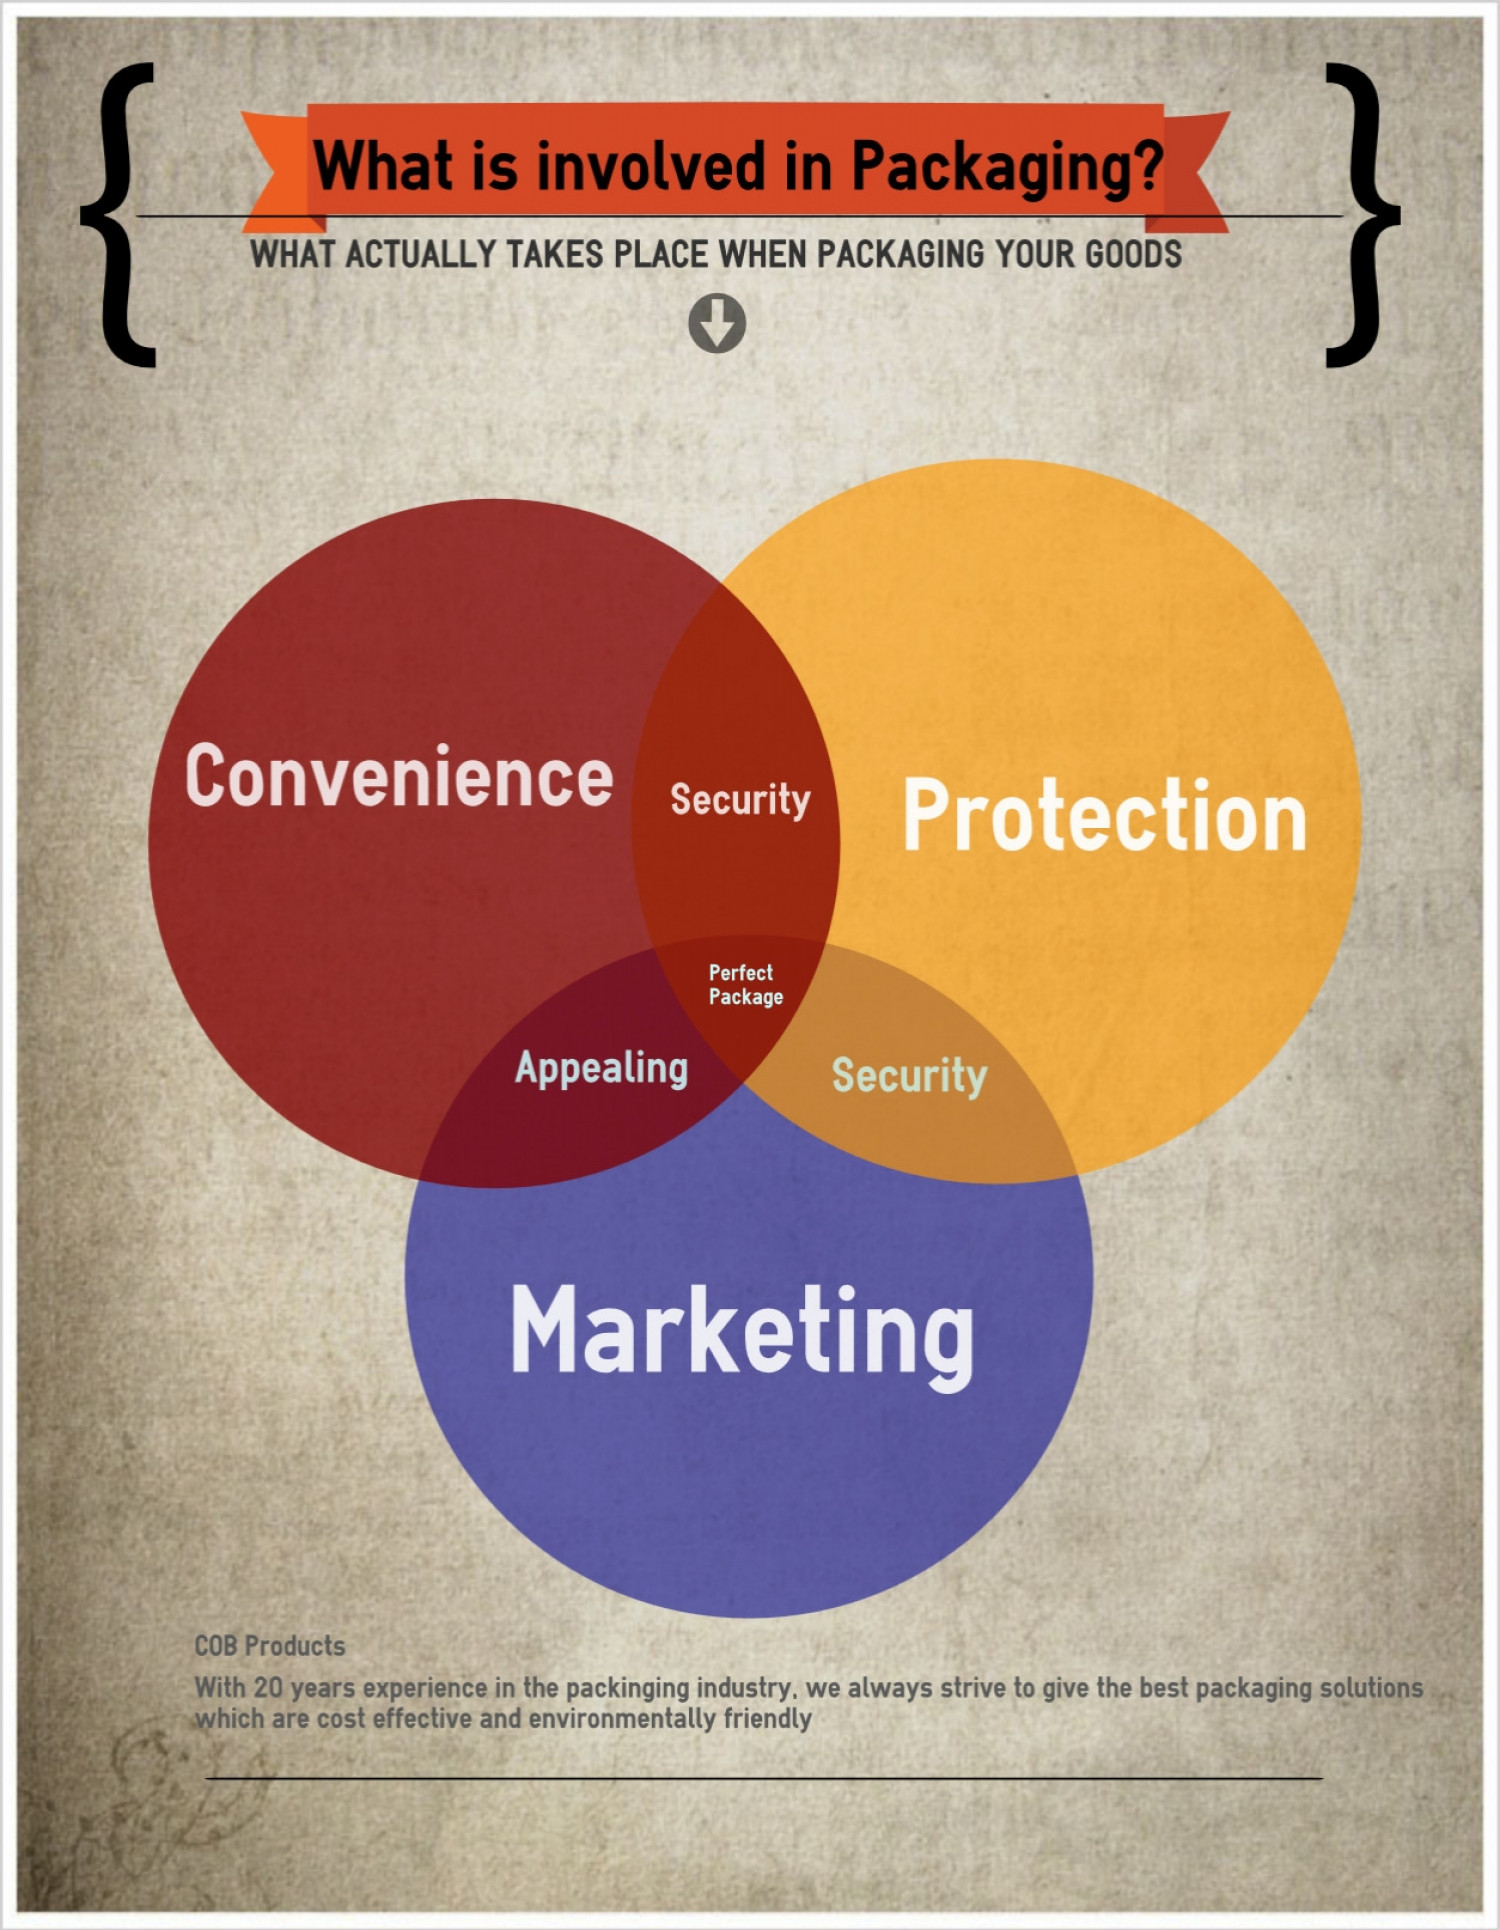 What is involved in Packaging Infographic